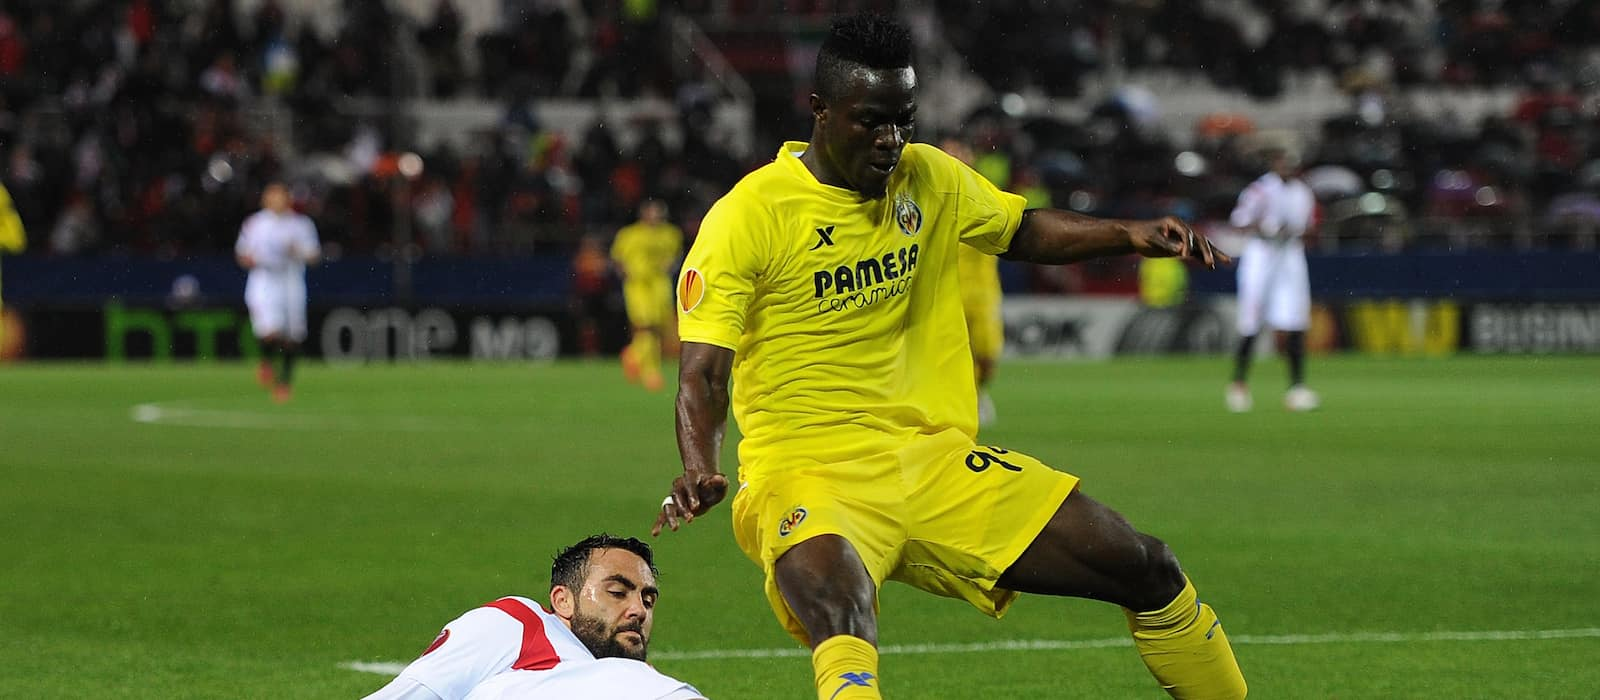 Jose Mourinho intending to buy another defender after Eric Bailly